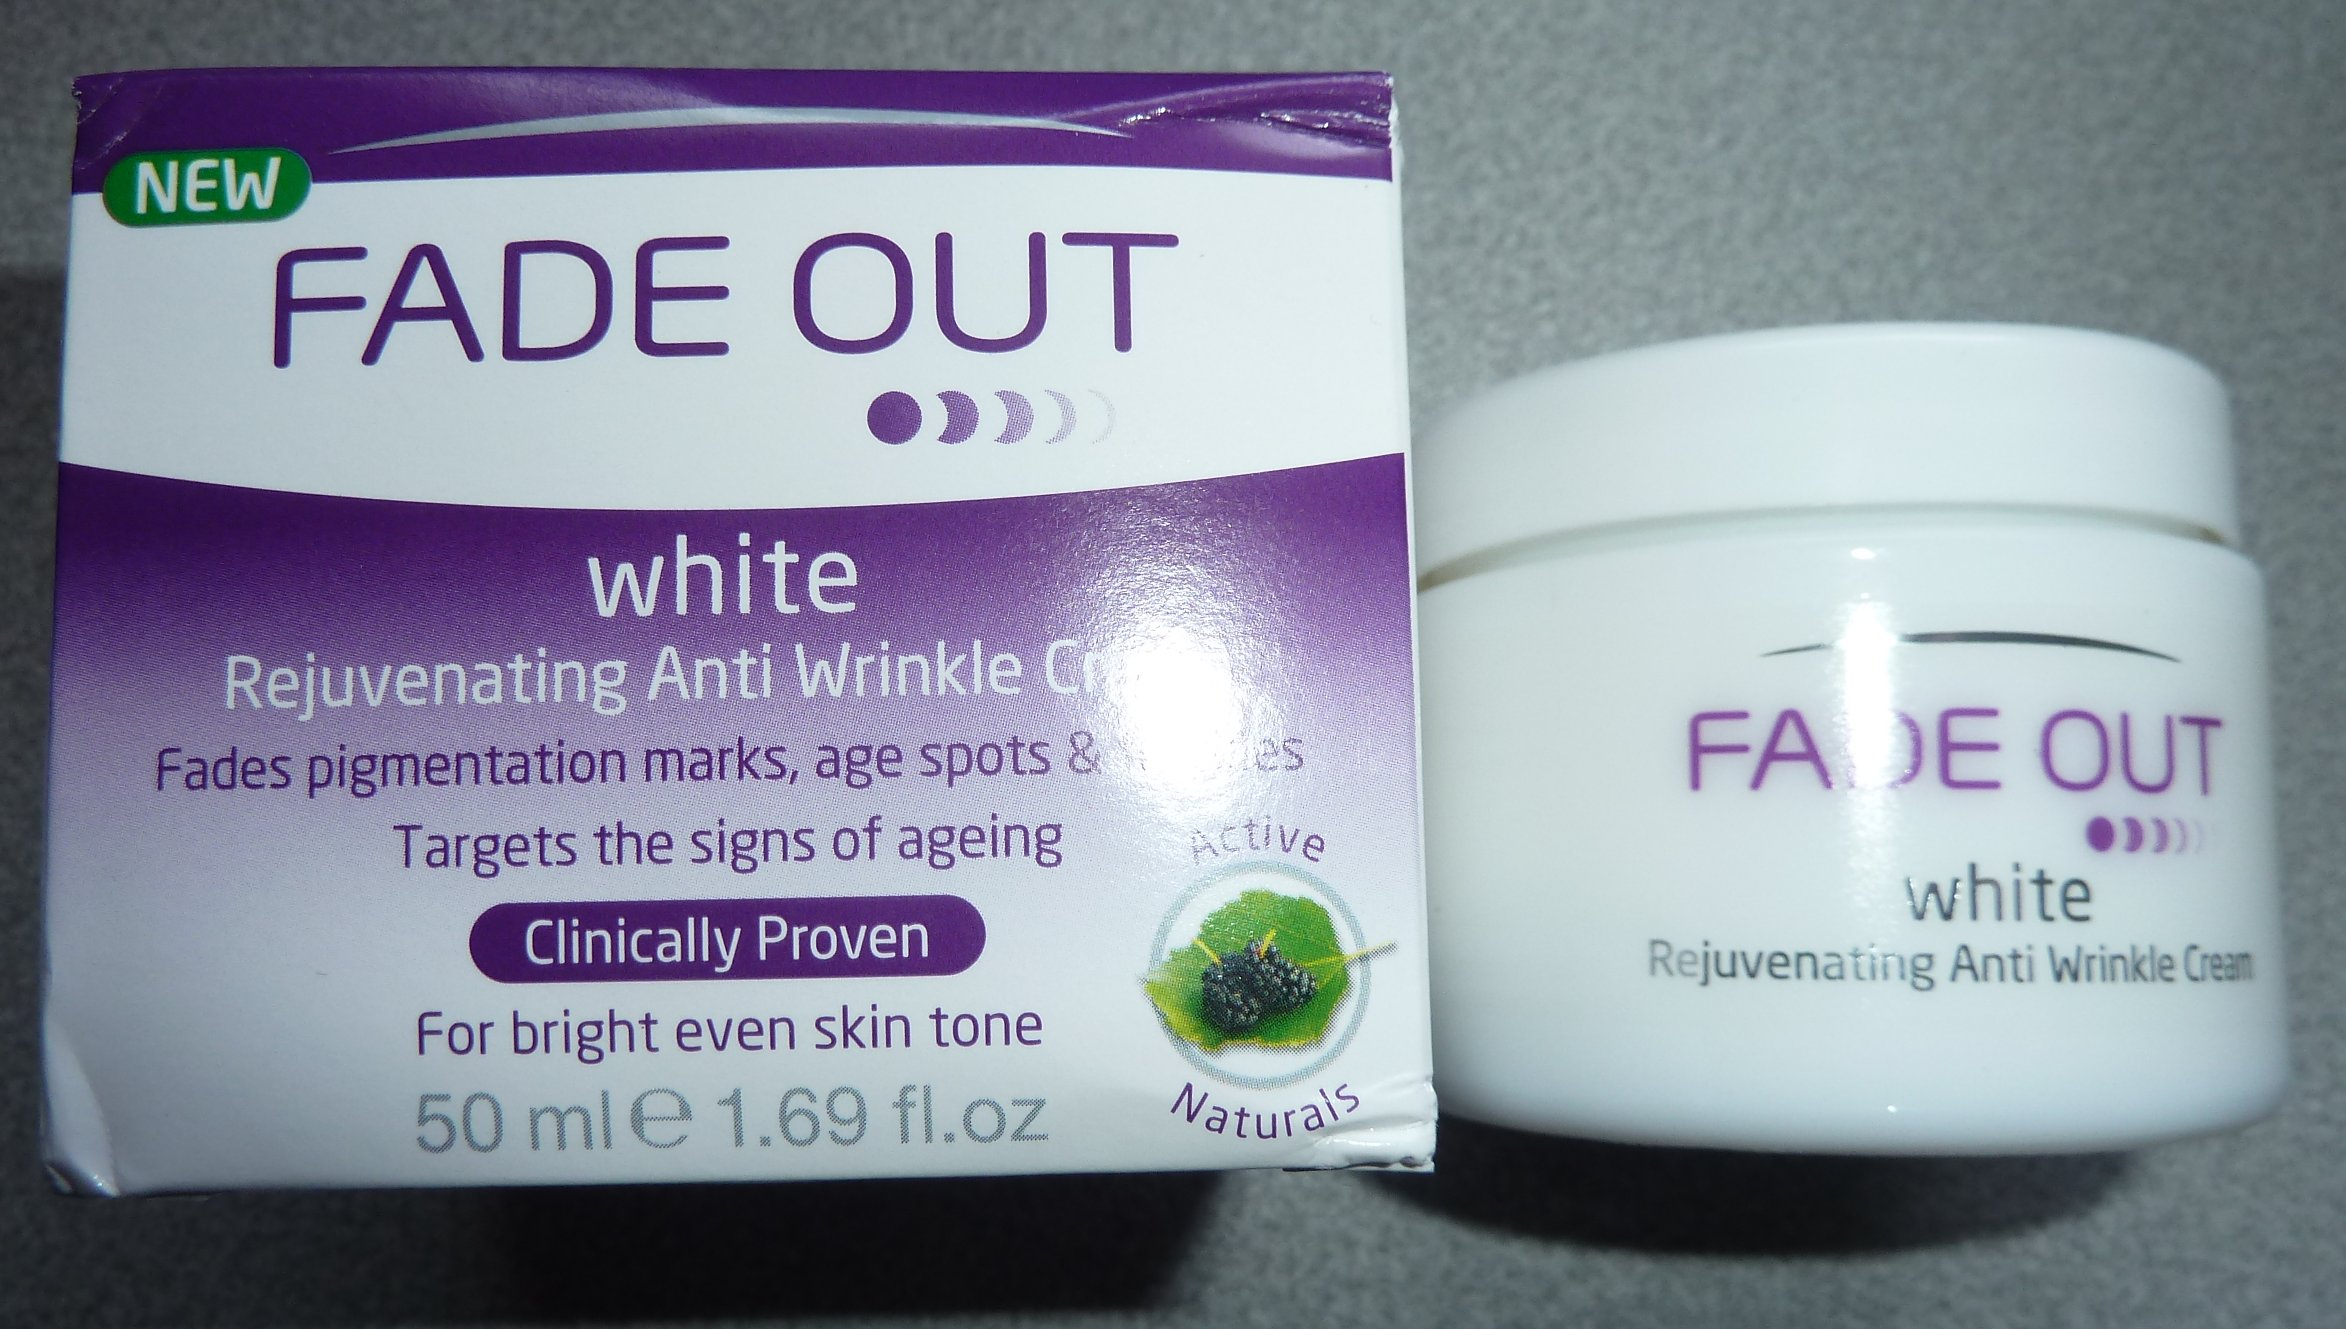 fade out whitening cream